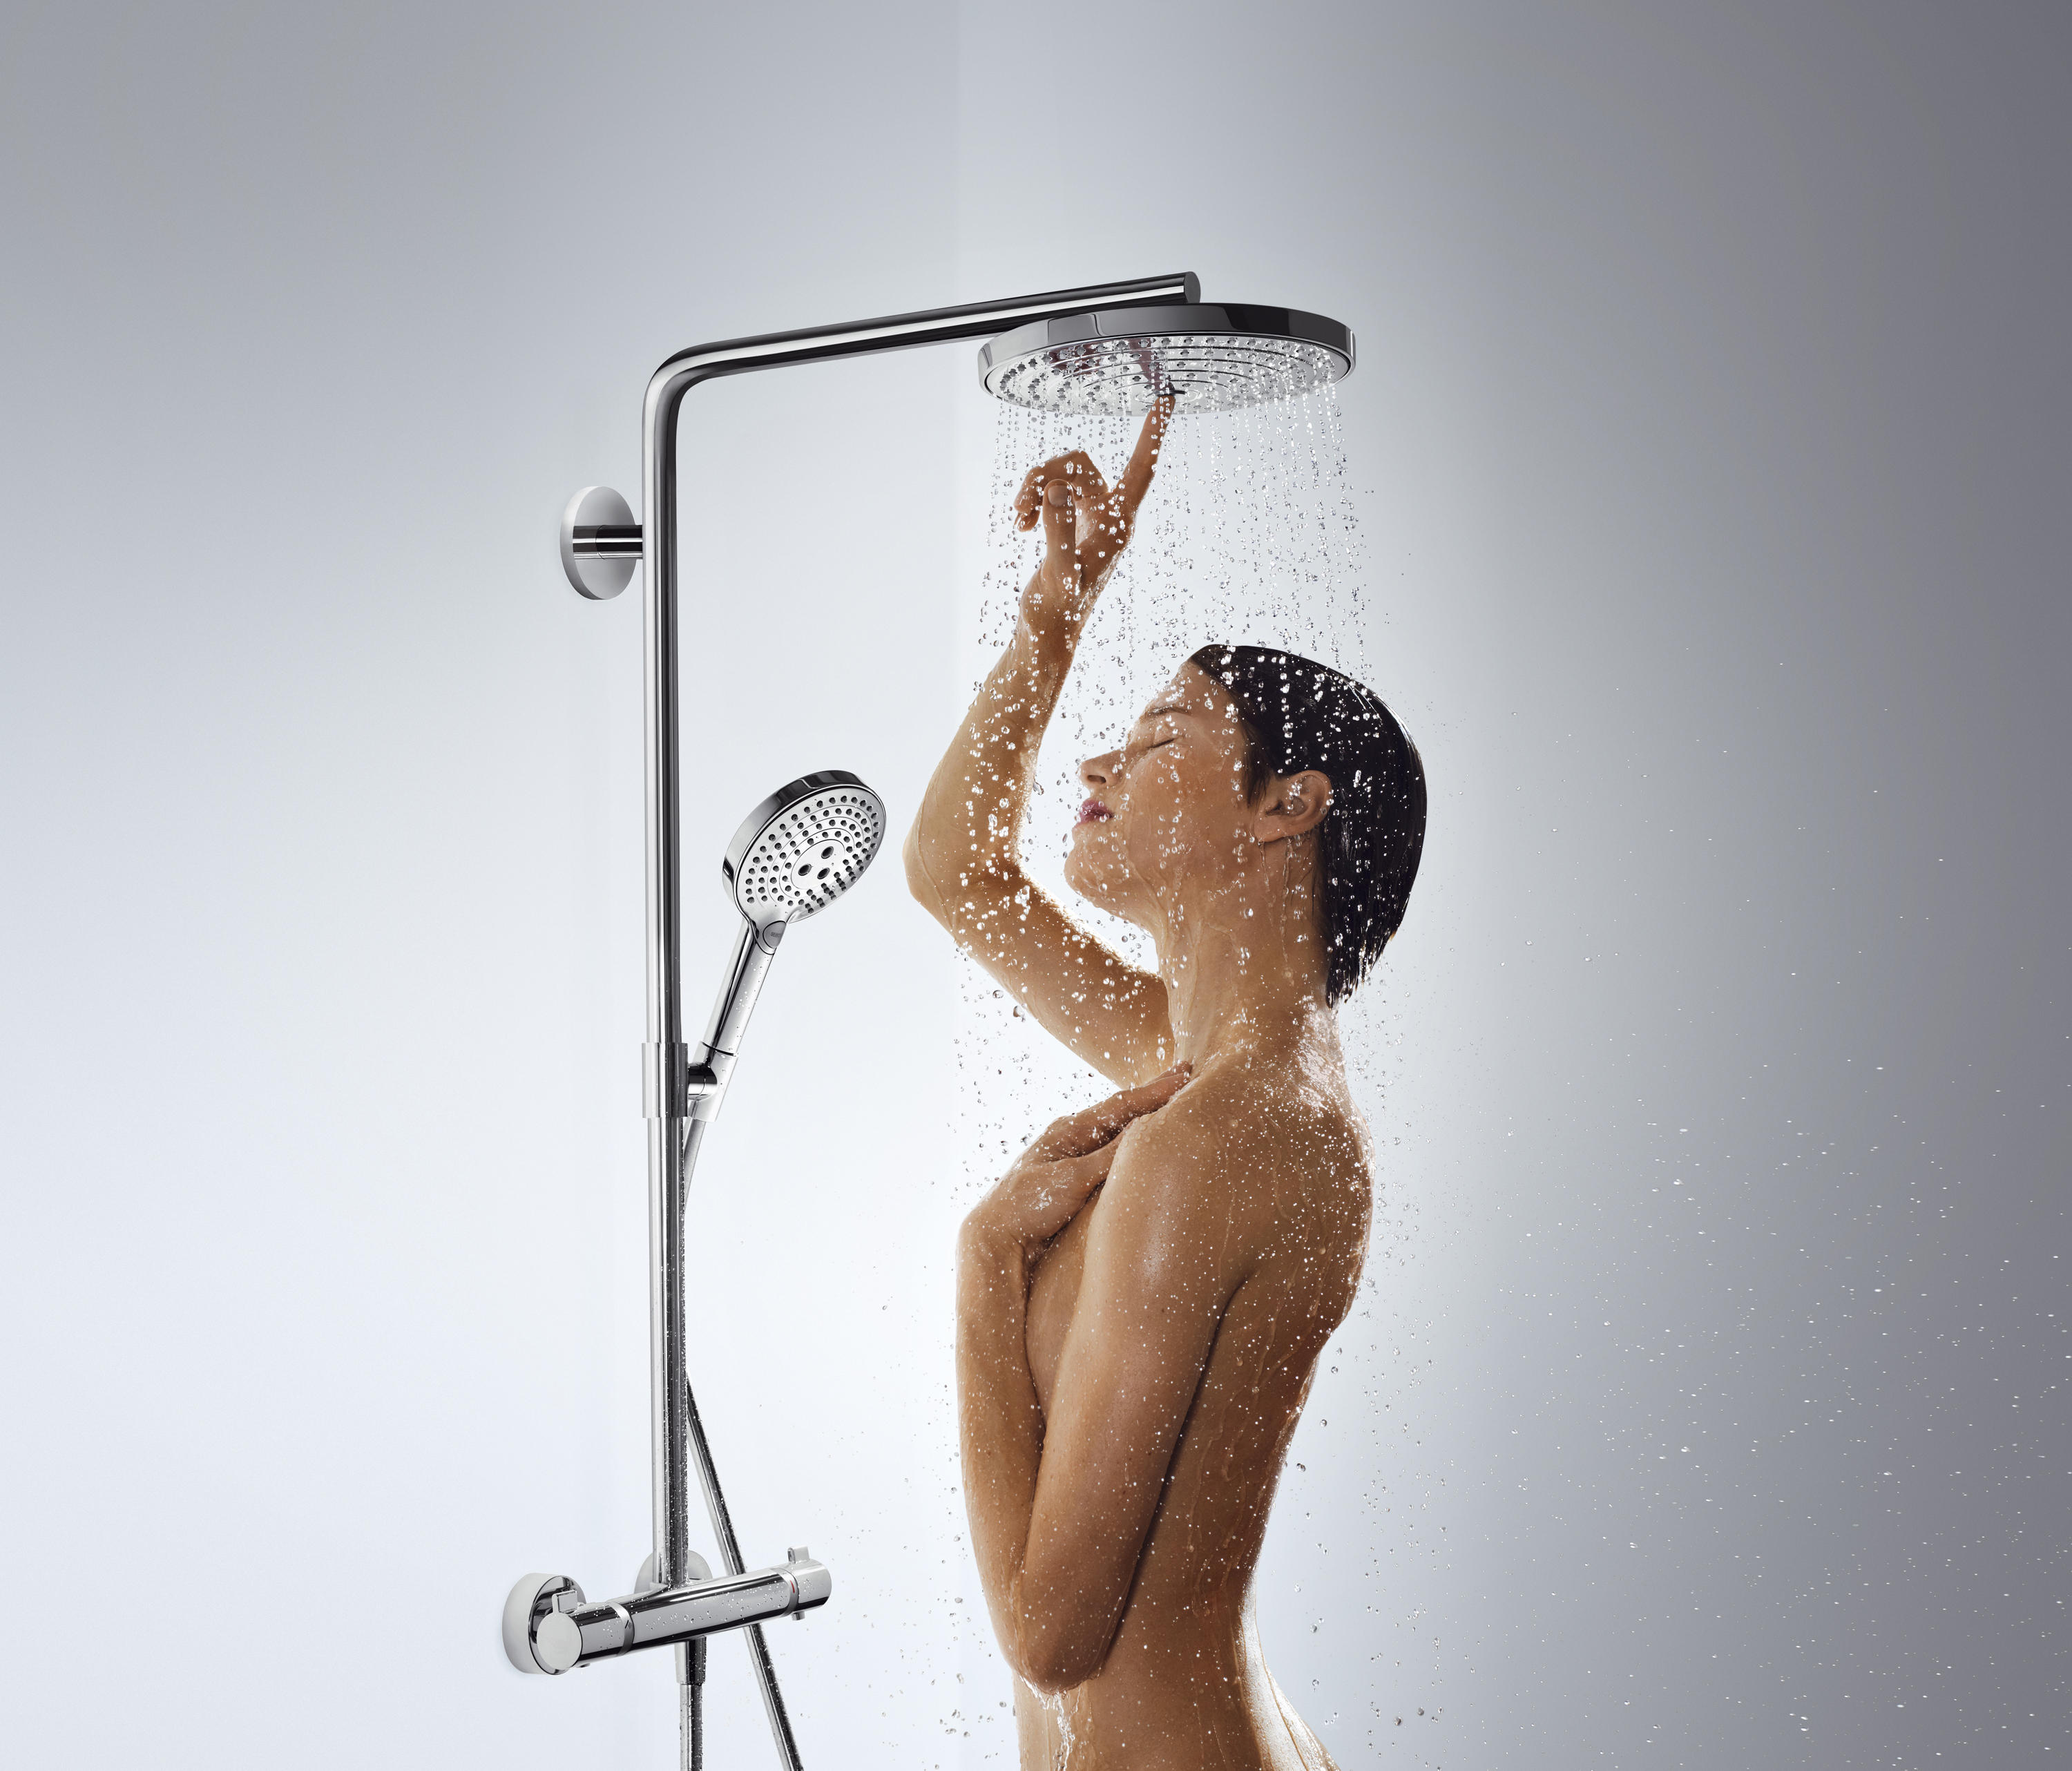 hansgrohe raindance select s 300 2jet showerpipe. Black Bedroom Furniture Sets. Home Design Ideas